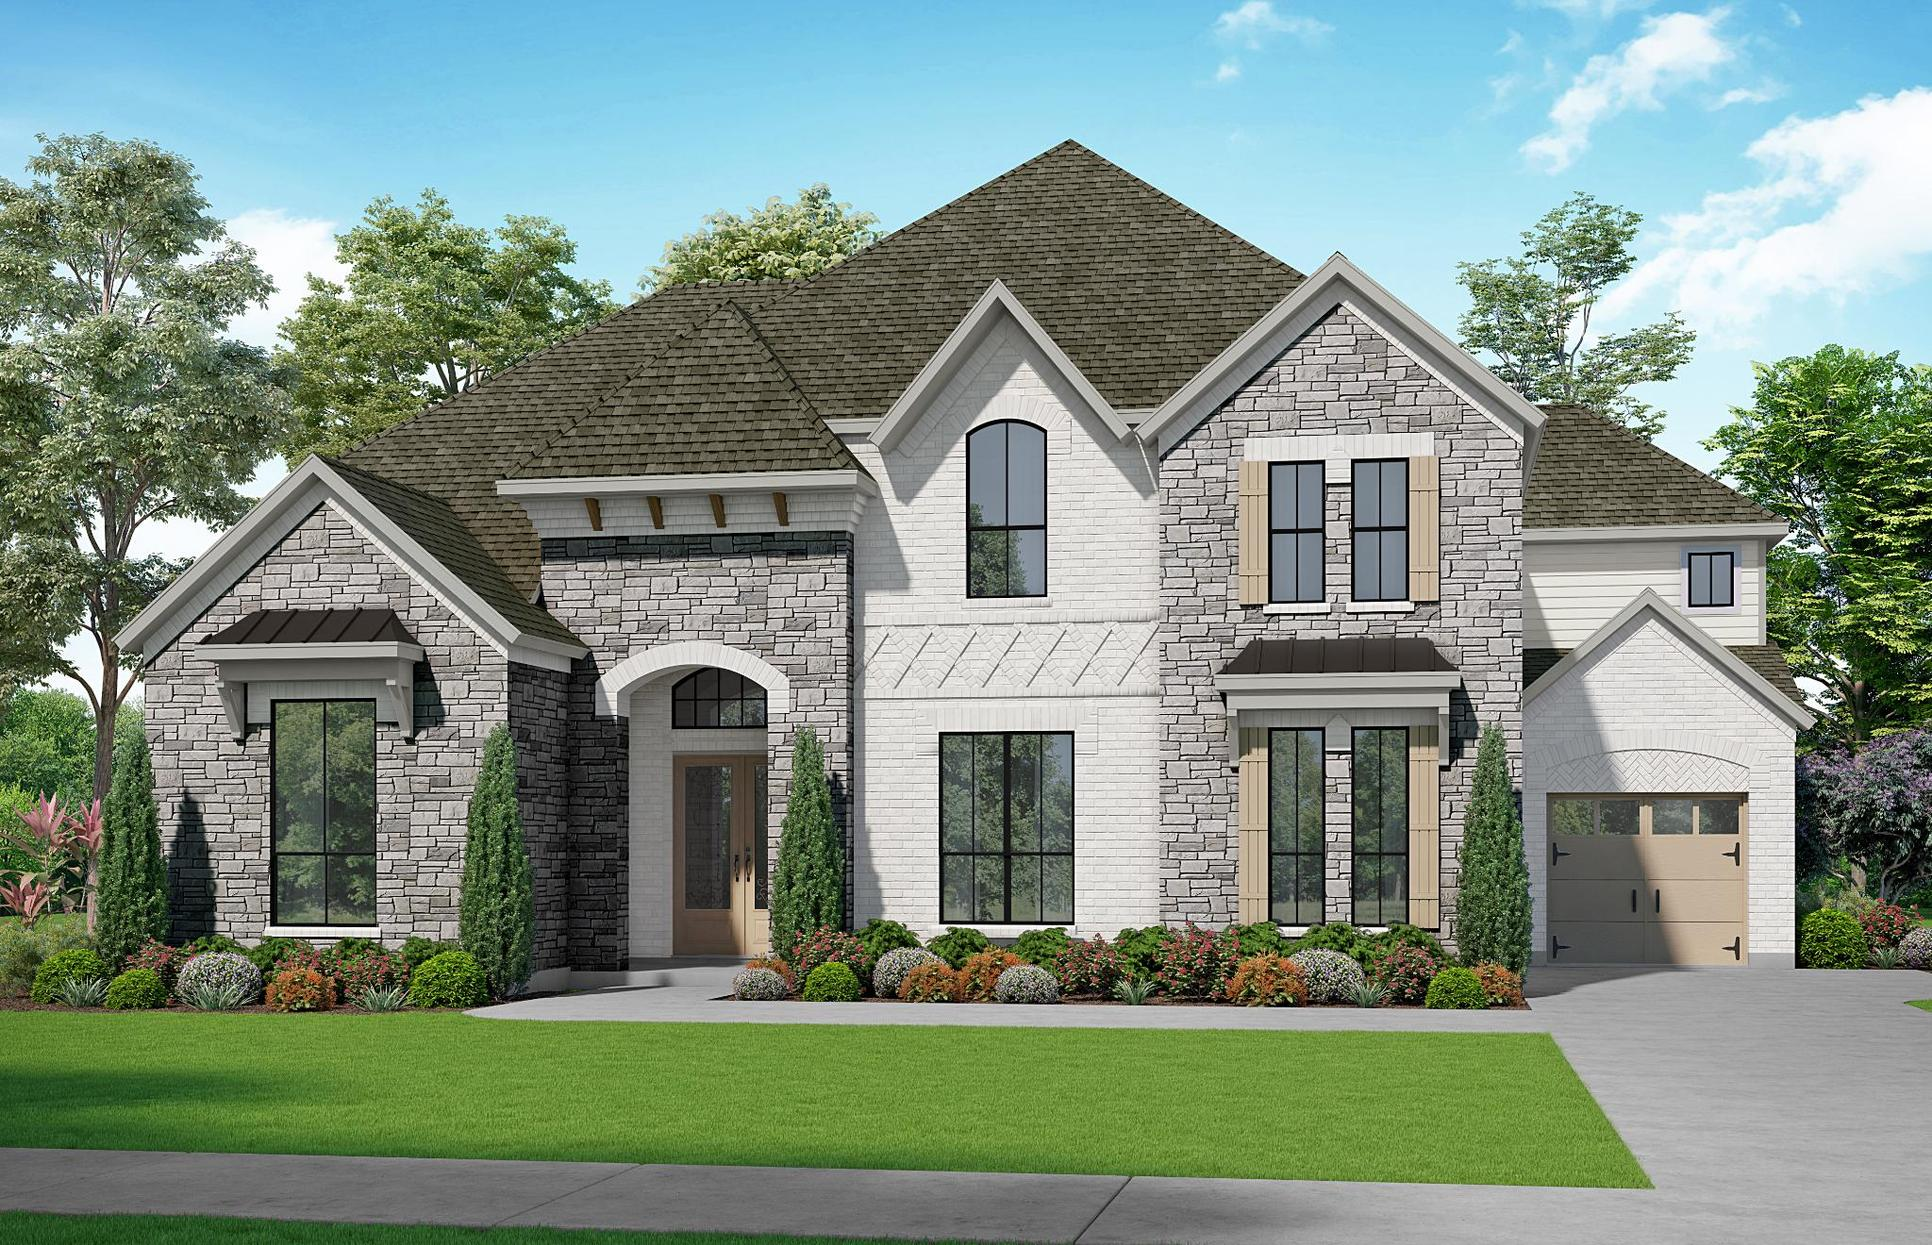 The Crockett - Elevation S1. Images are artist renderings and will differ from the actual home bu...:Elevation S1